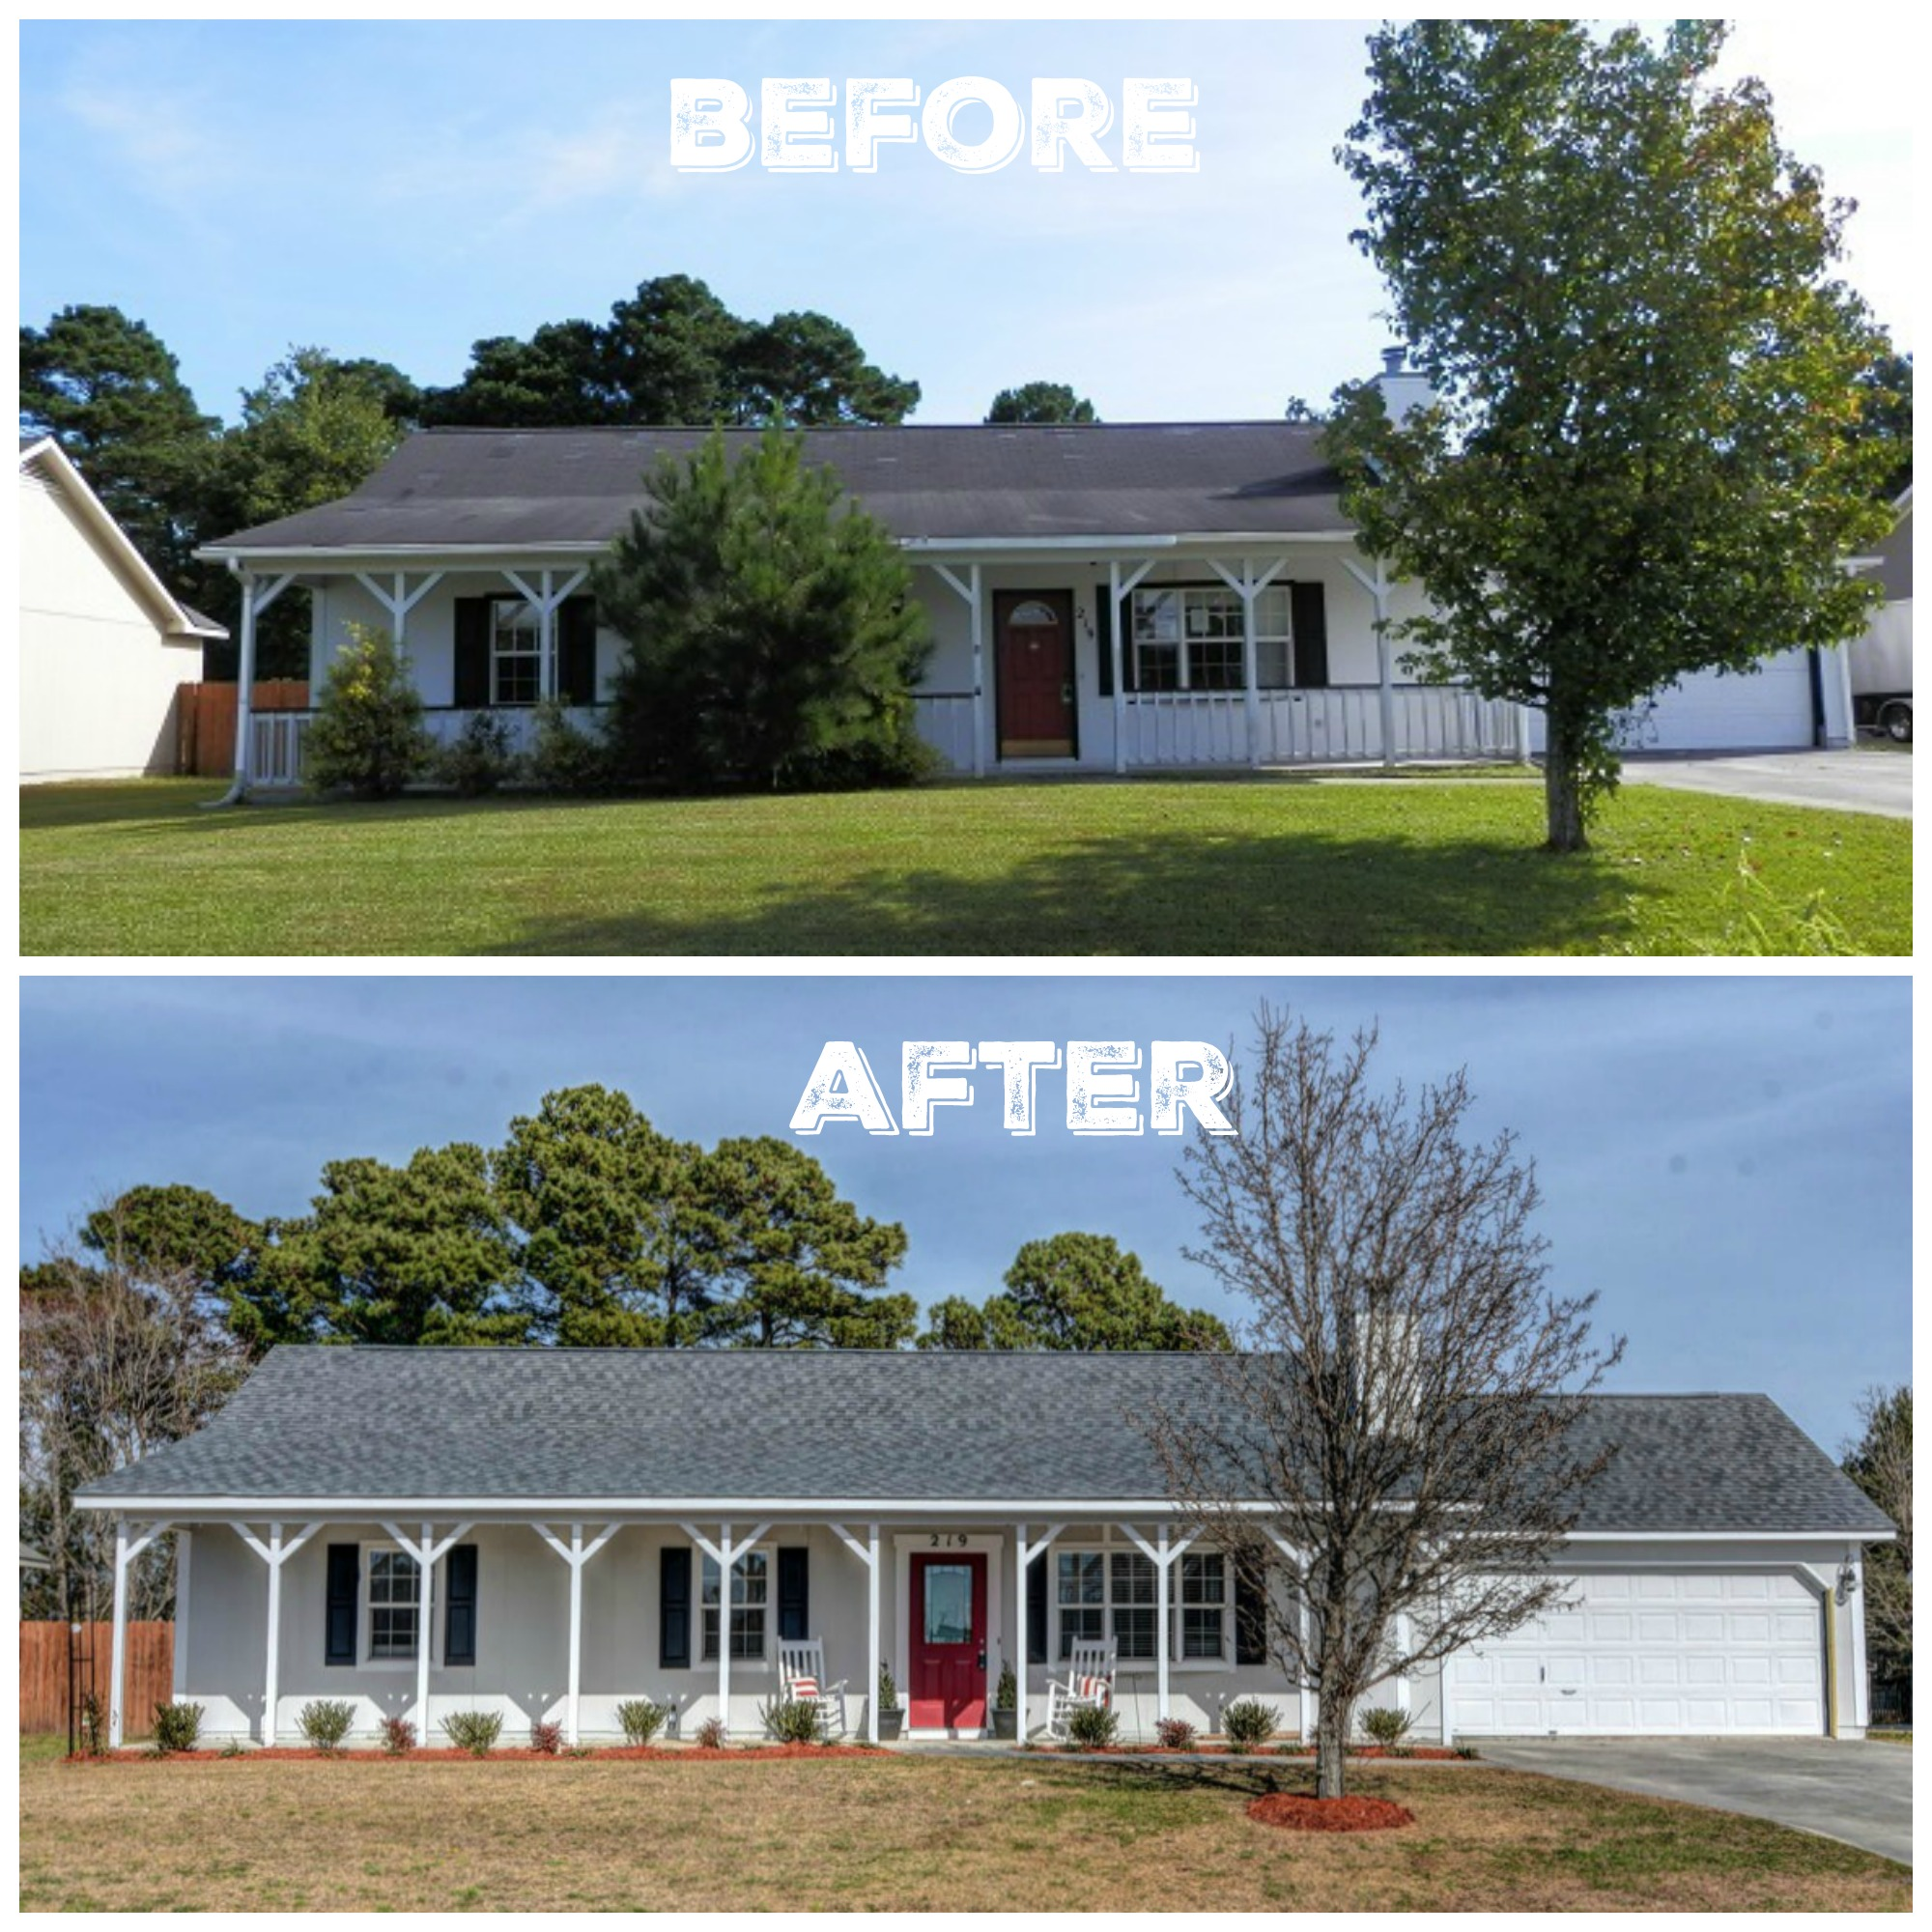 Before & After Exterior | Flip House Reveal | The Everyday Home